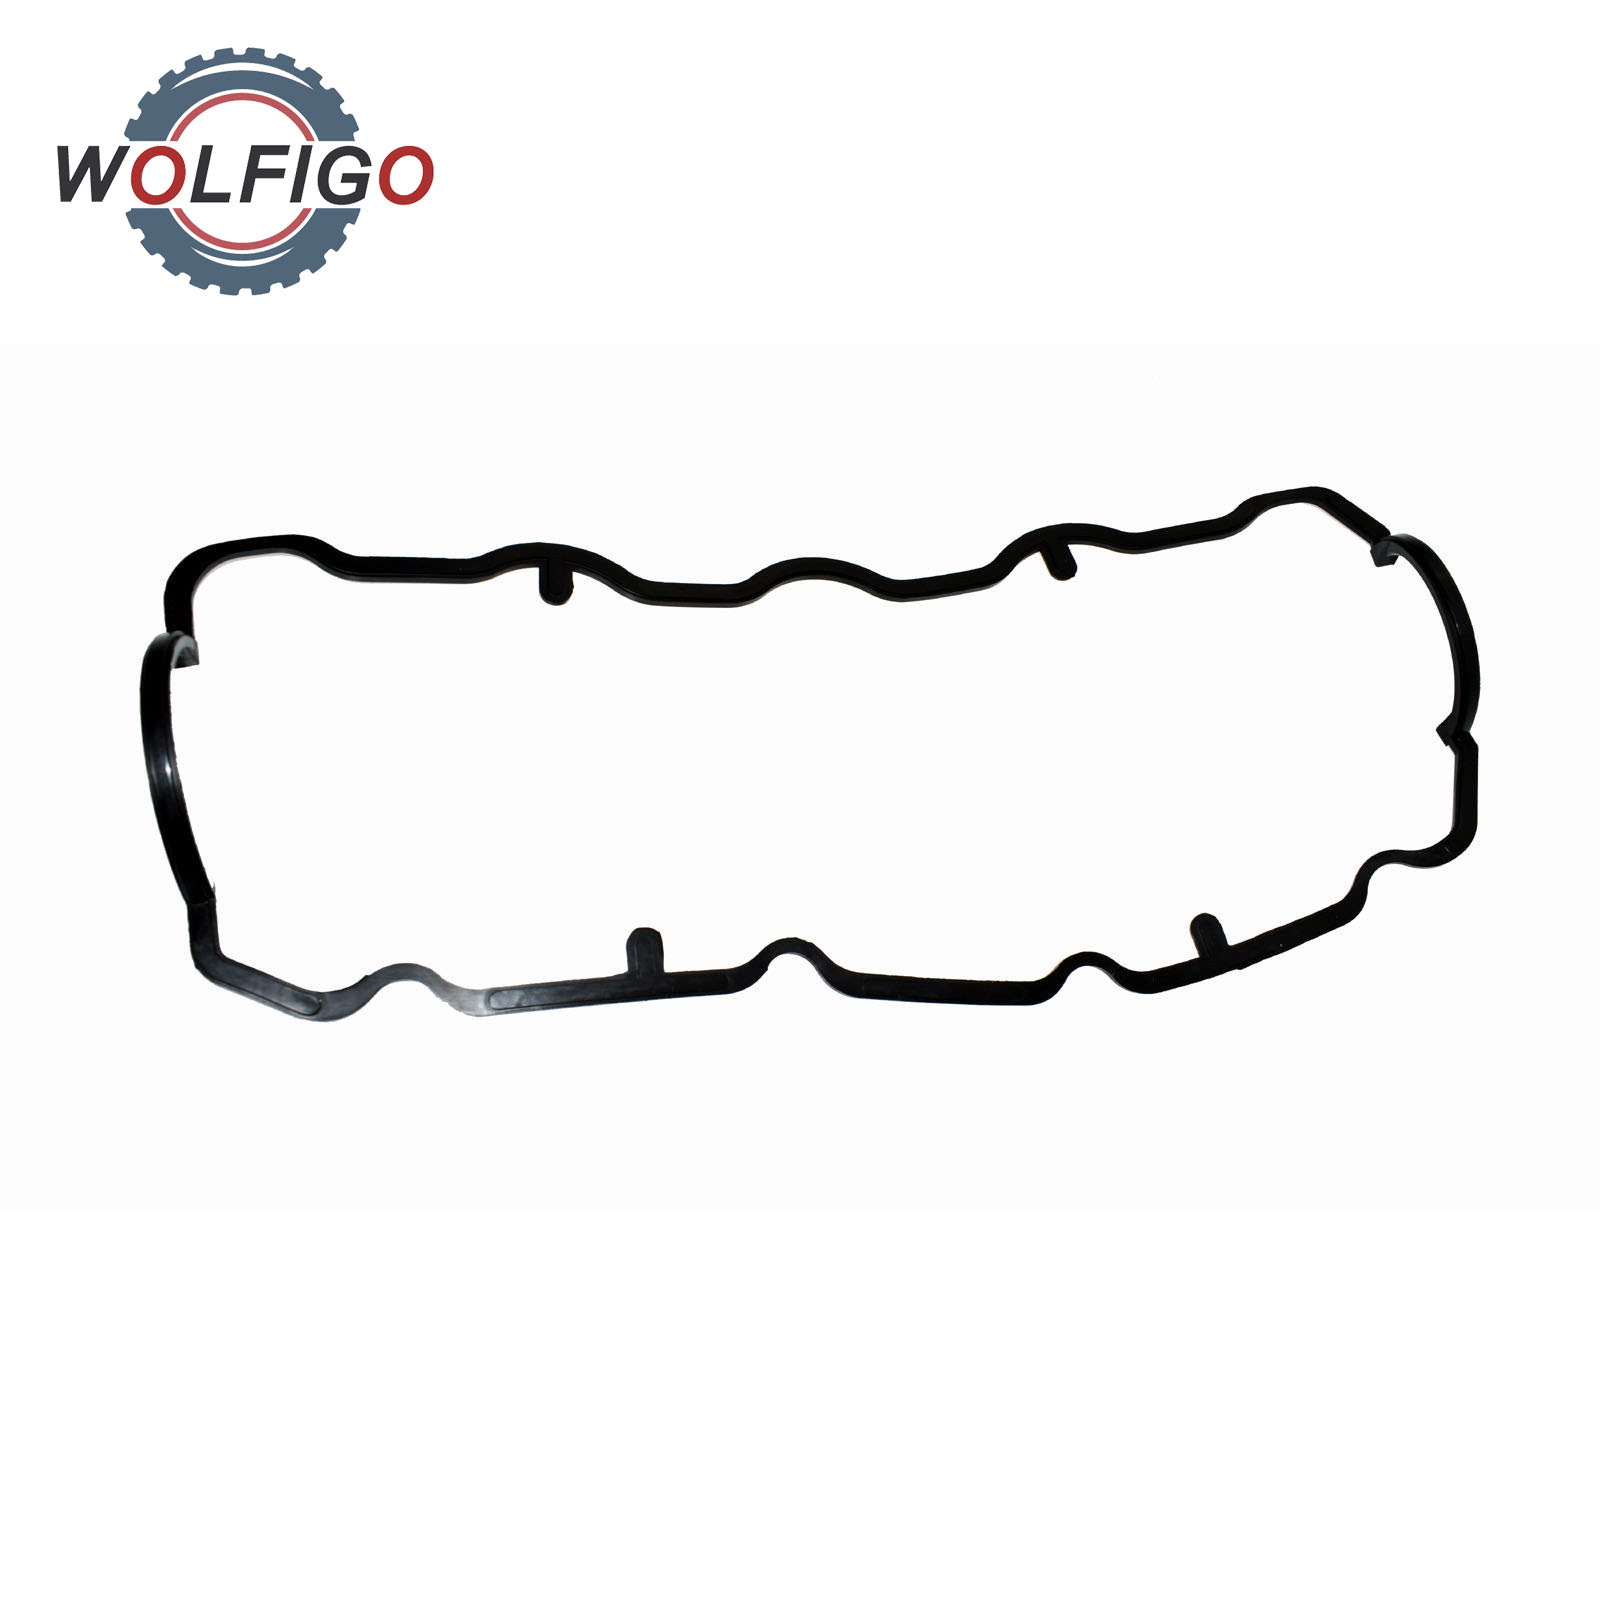 Wolfigo Engine Valve Cover Gasket Seal E For Vw